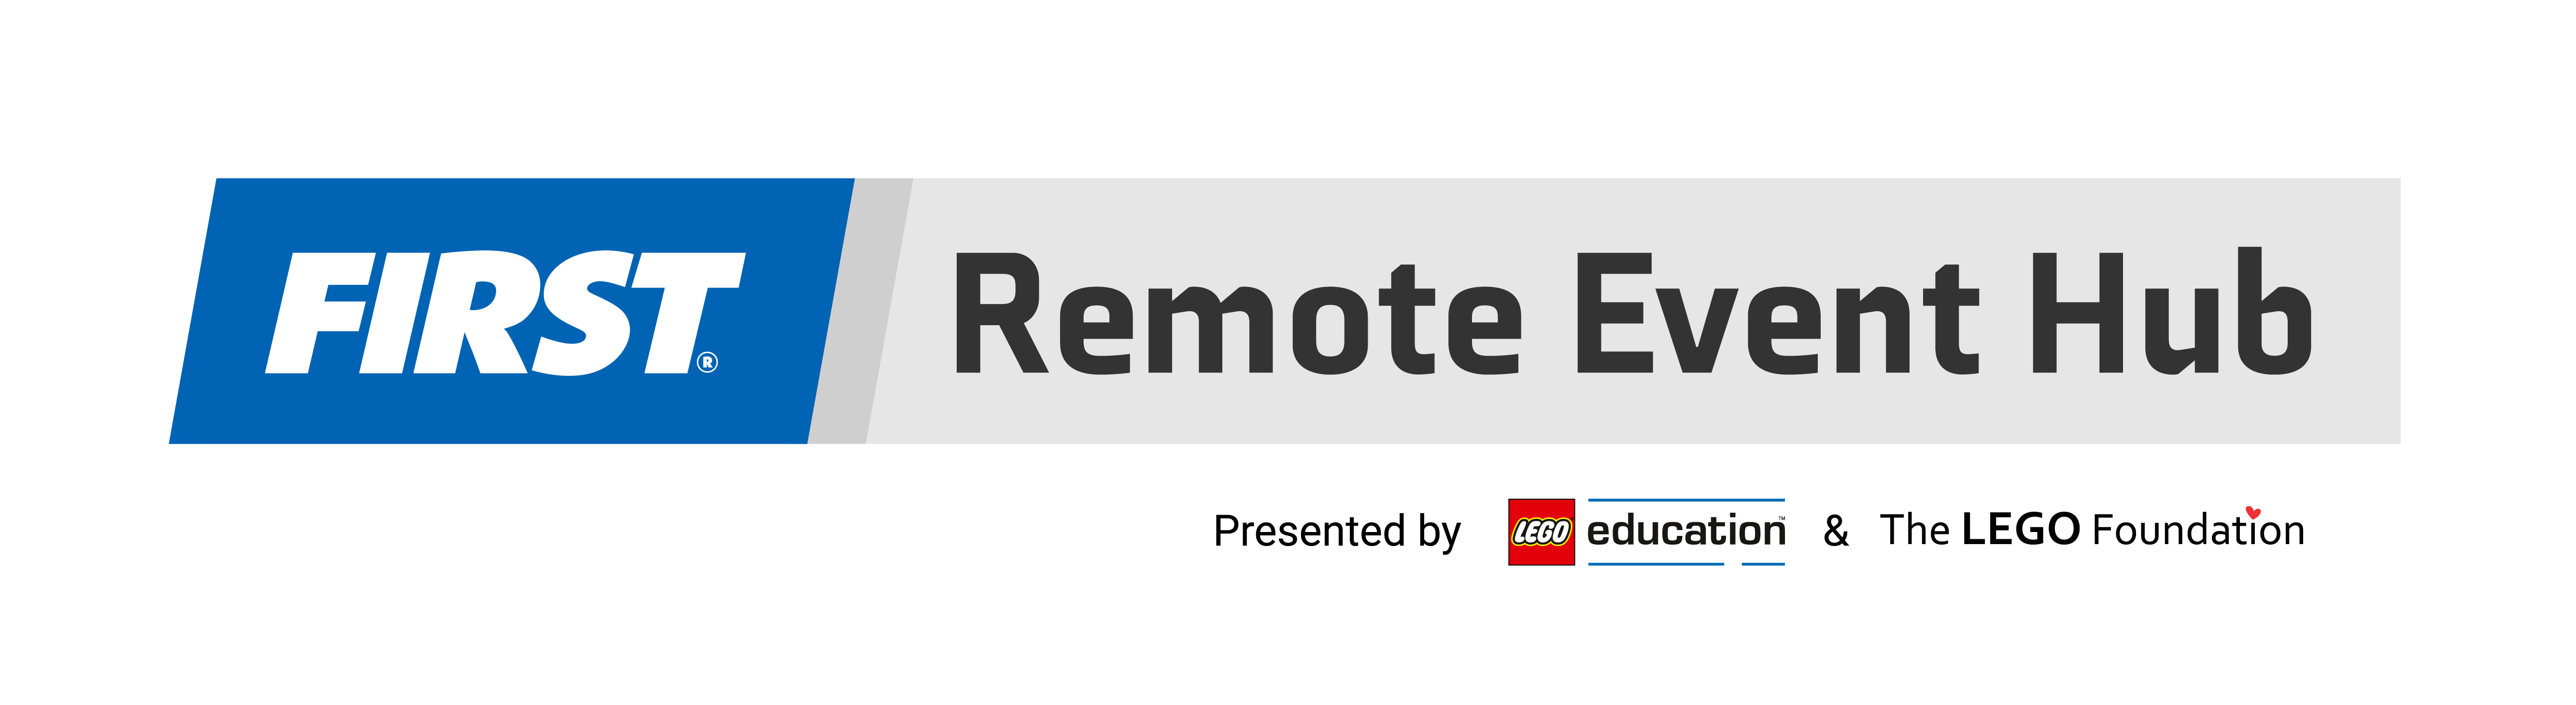 FIRST Remote Event Hub logo